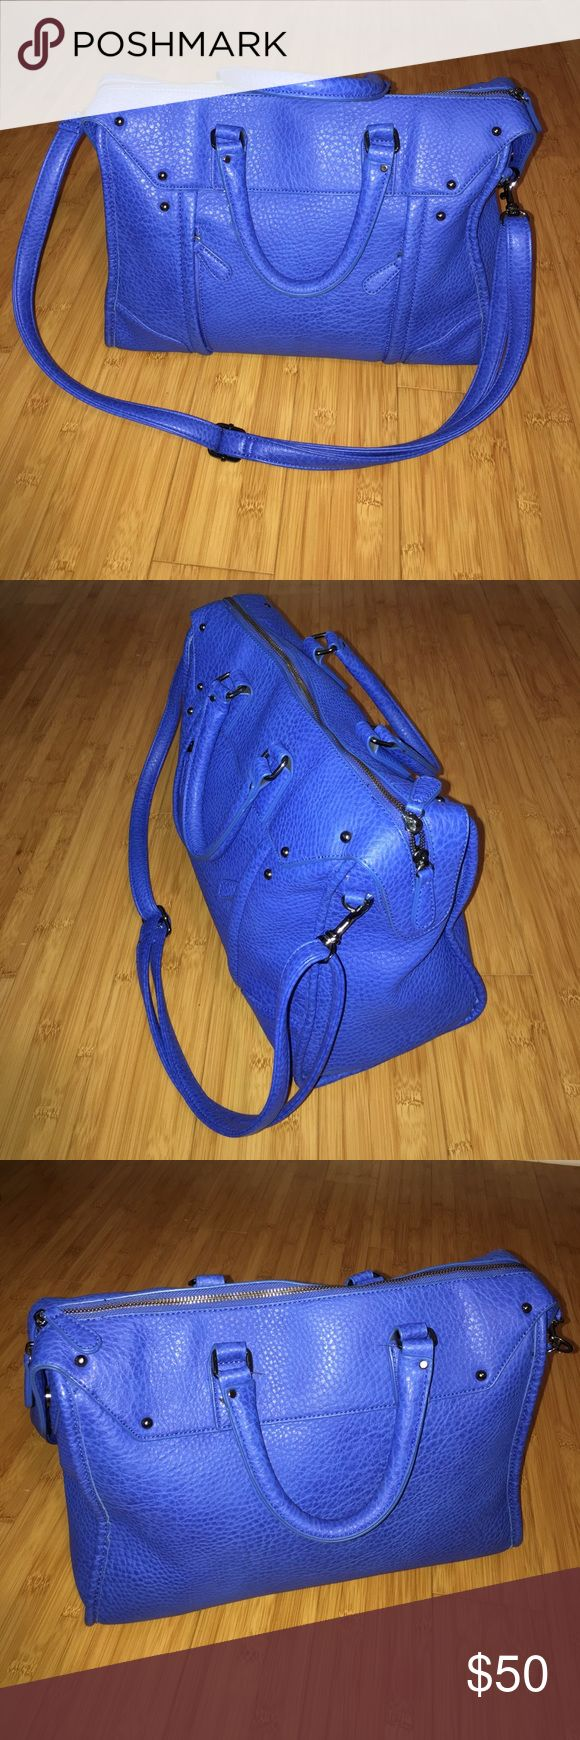 """Blue Tote Bag Blue Crossbody Tote Bag. It has two front pocket and two inside pocket. Color: Blue Closure: Zipperfly Pre-owned. Well taking care of. Just like new.  Measurements: Handle: 14"""" inches Crossbody strap:  53"""" inches Height:  31cm Depth: 13cm Width: 15"""" inches  Bundle and save. Reasonable offers are welcome. JustFab Bags Totes"""